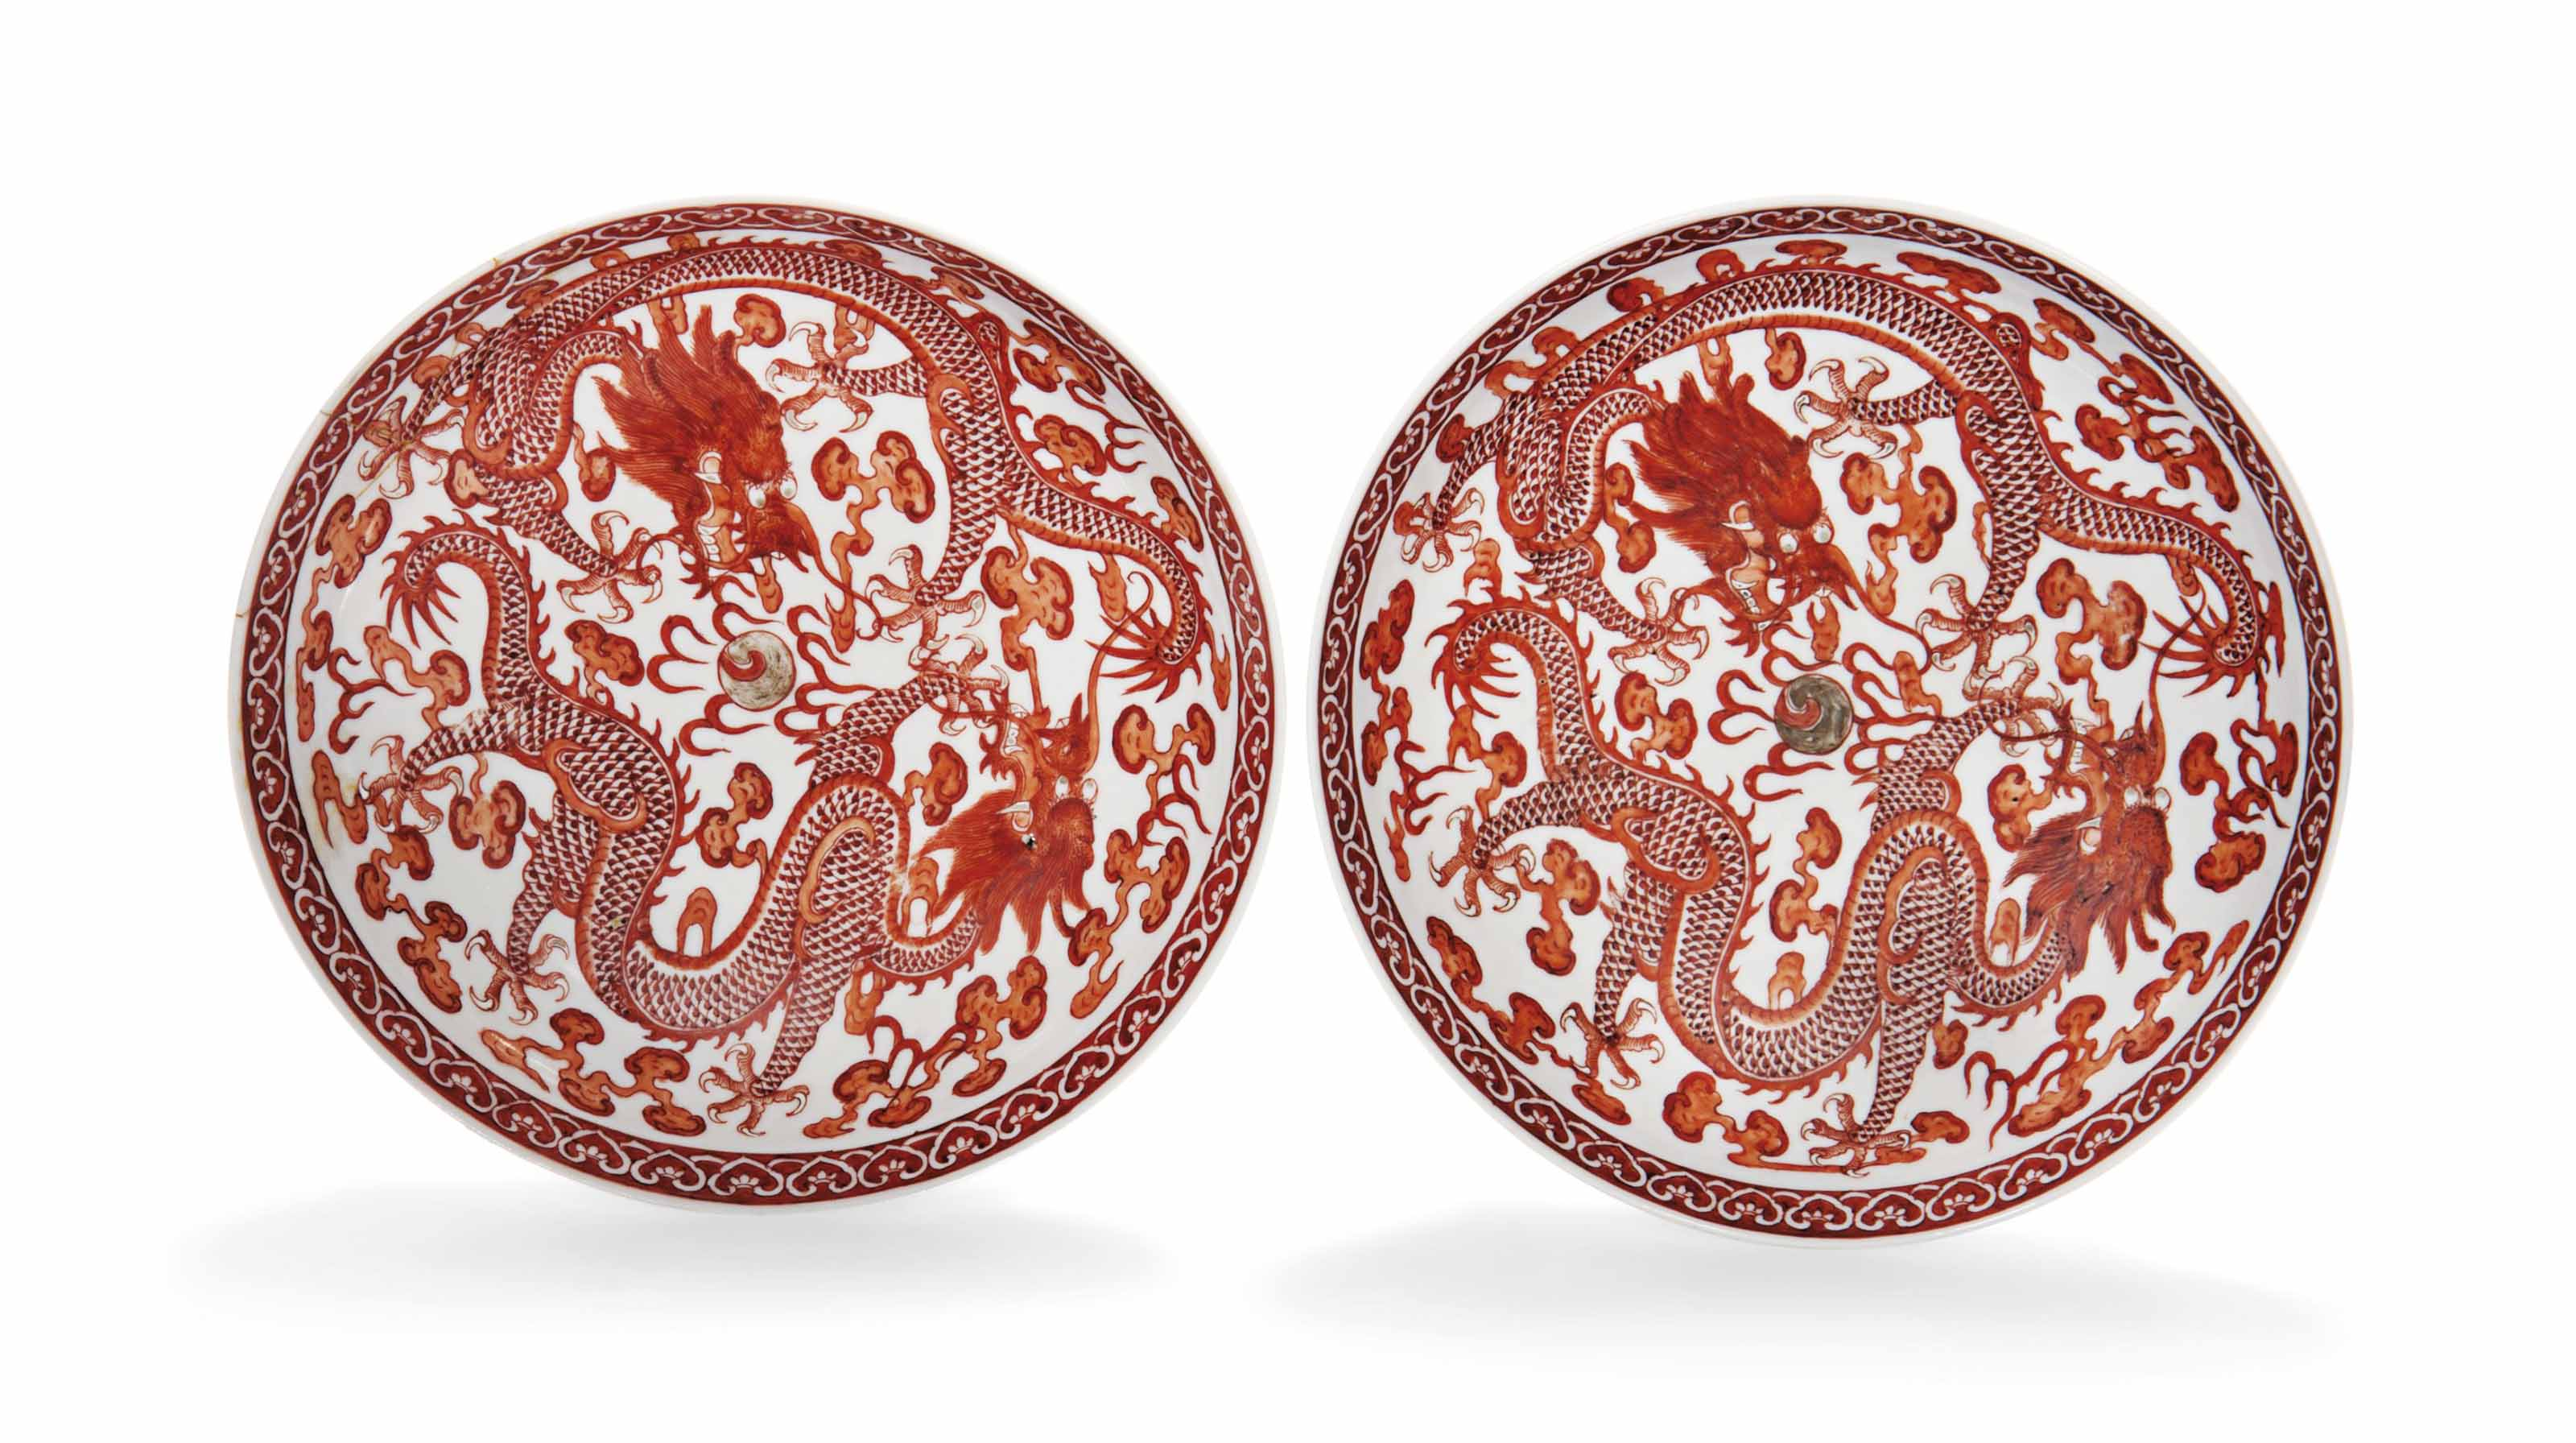 A PAIR OF CHINESE IRON-RED-DEC